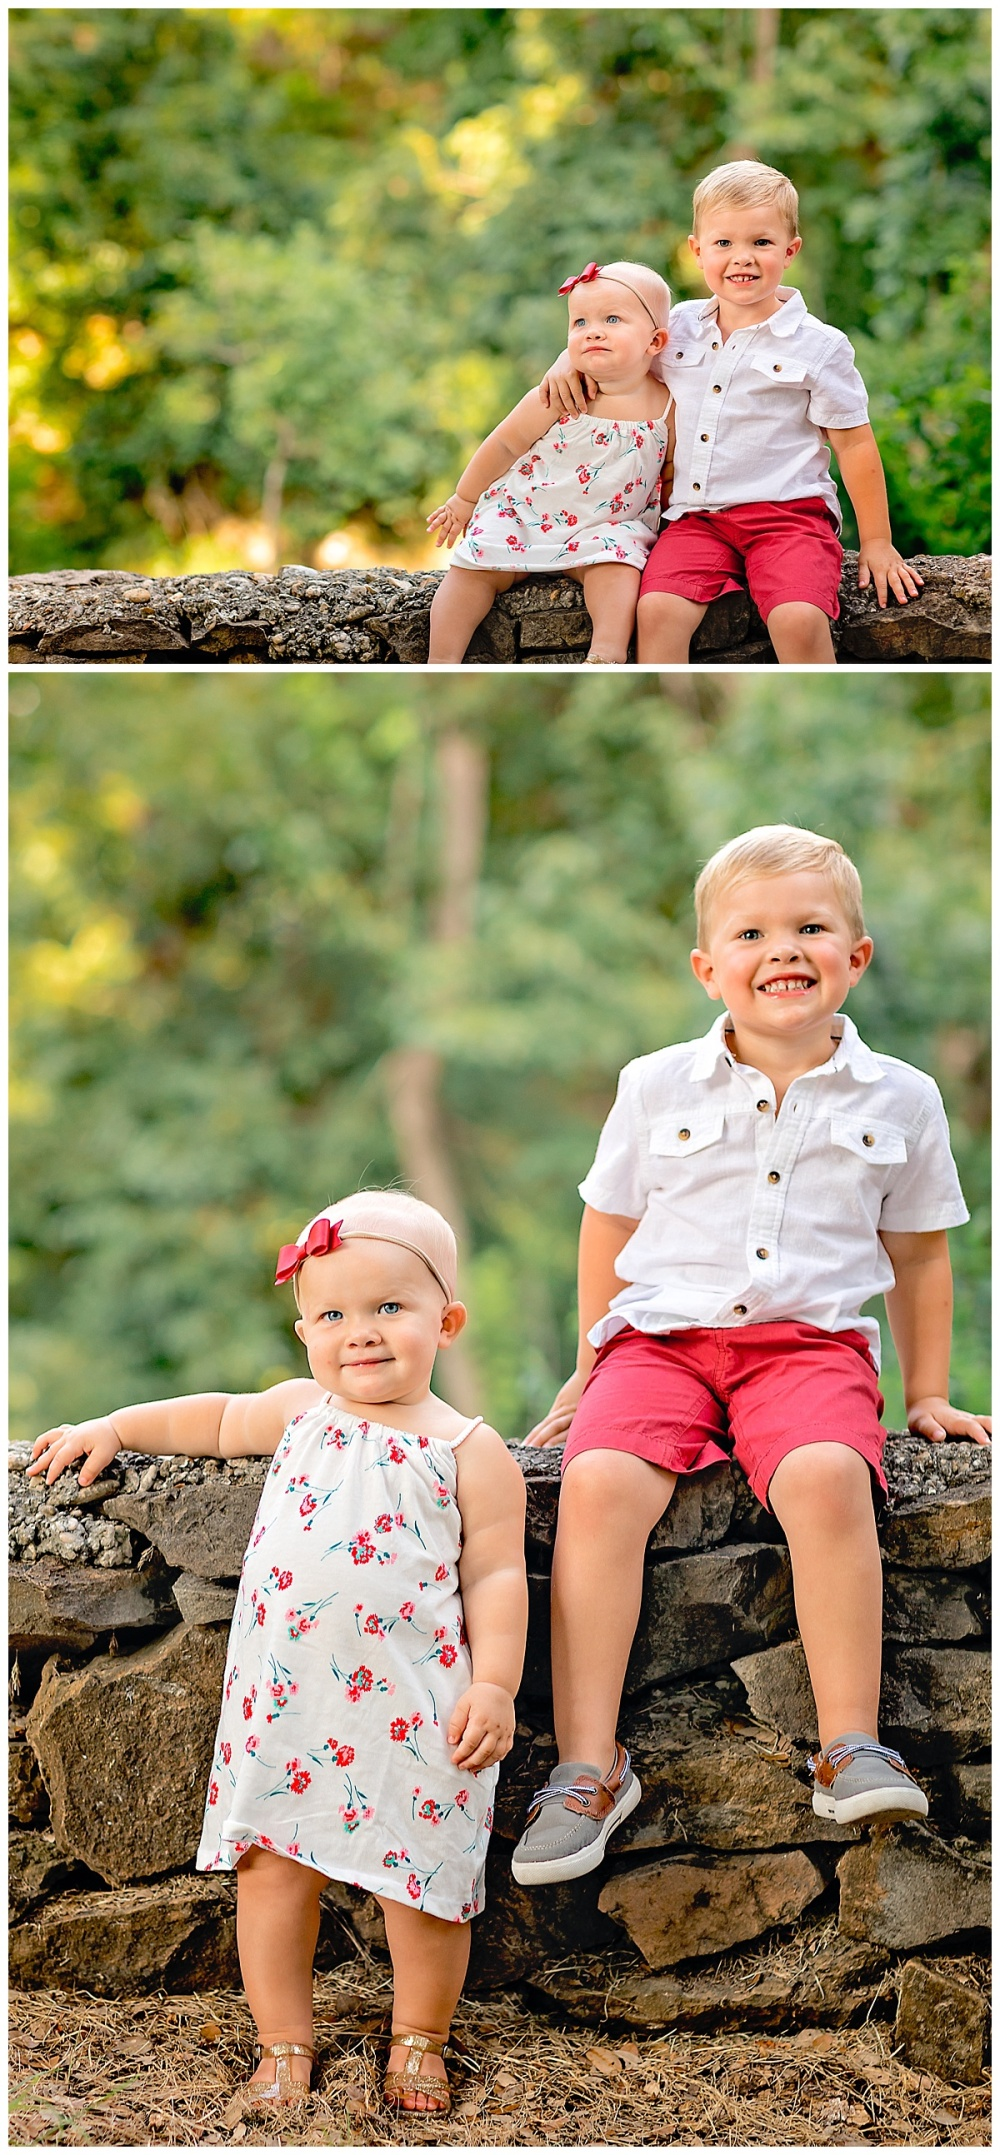 Carly-Barton-Photography-Family-Photos-Walnut-Springs-Park-Seguin-Texas-Pierdolla-Birthday_0001.jpg